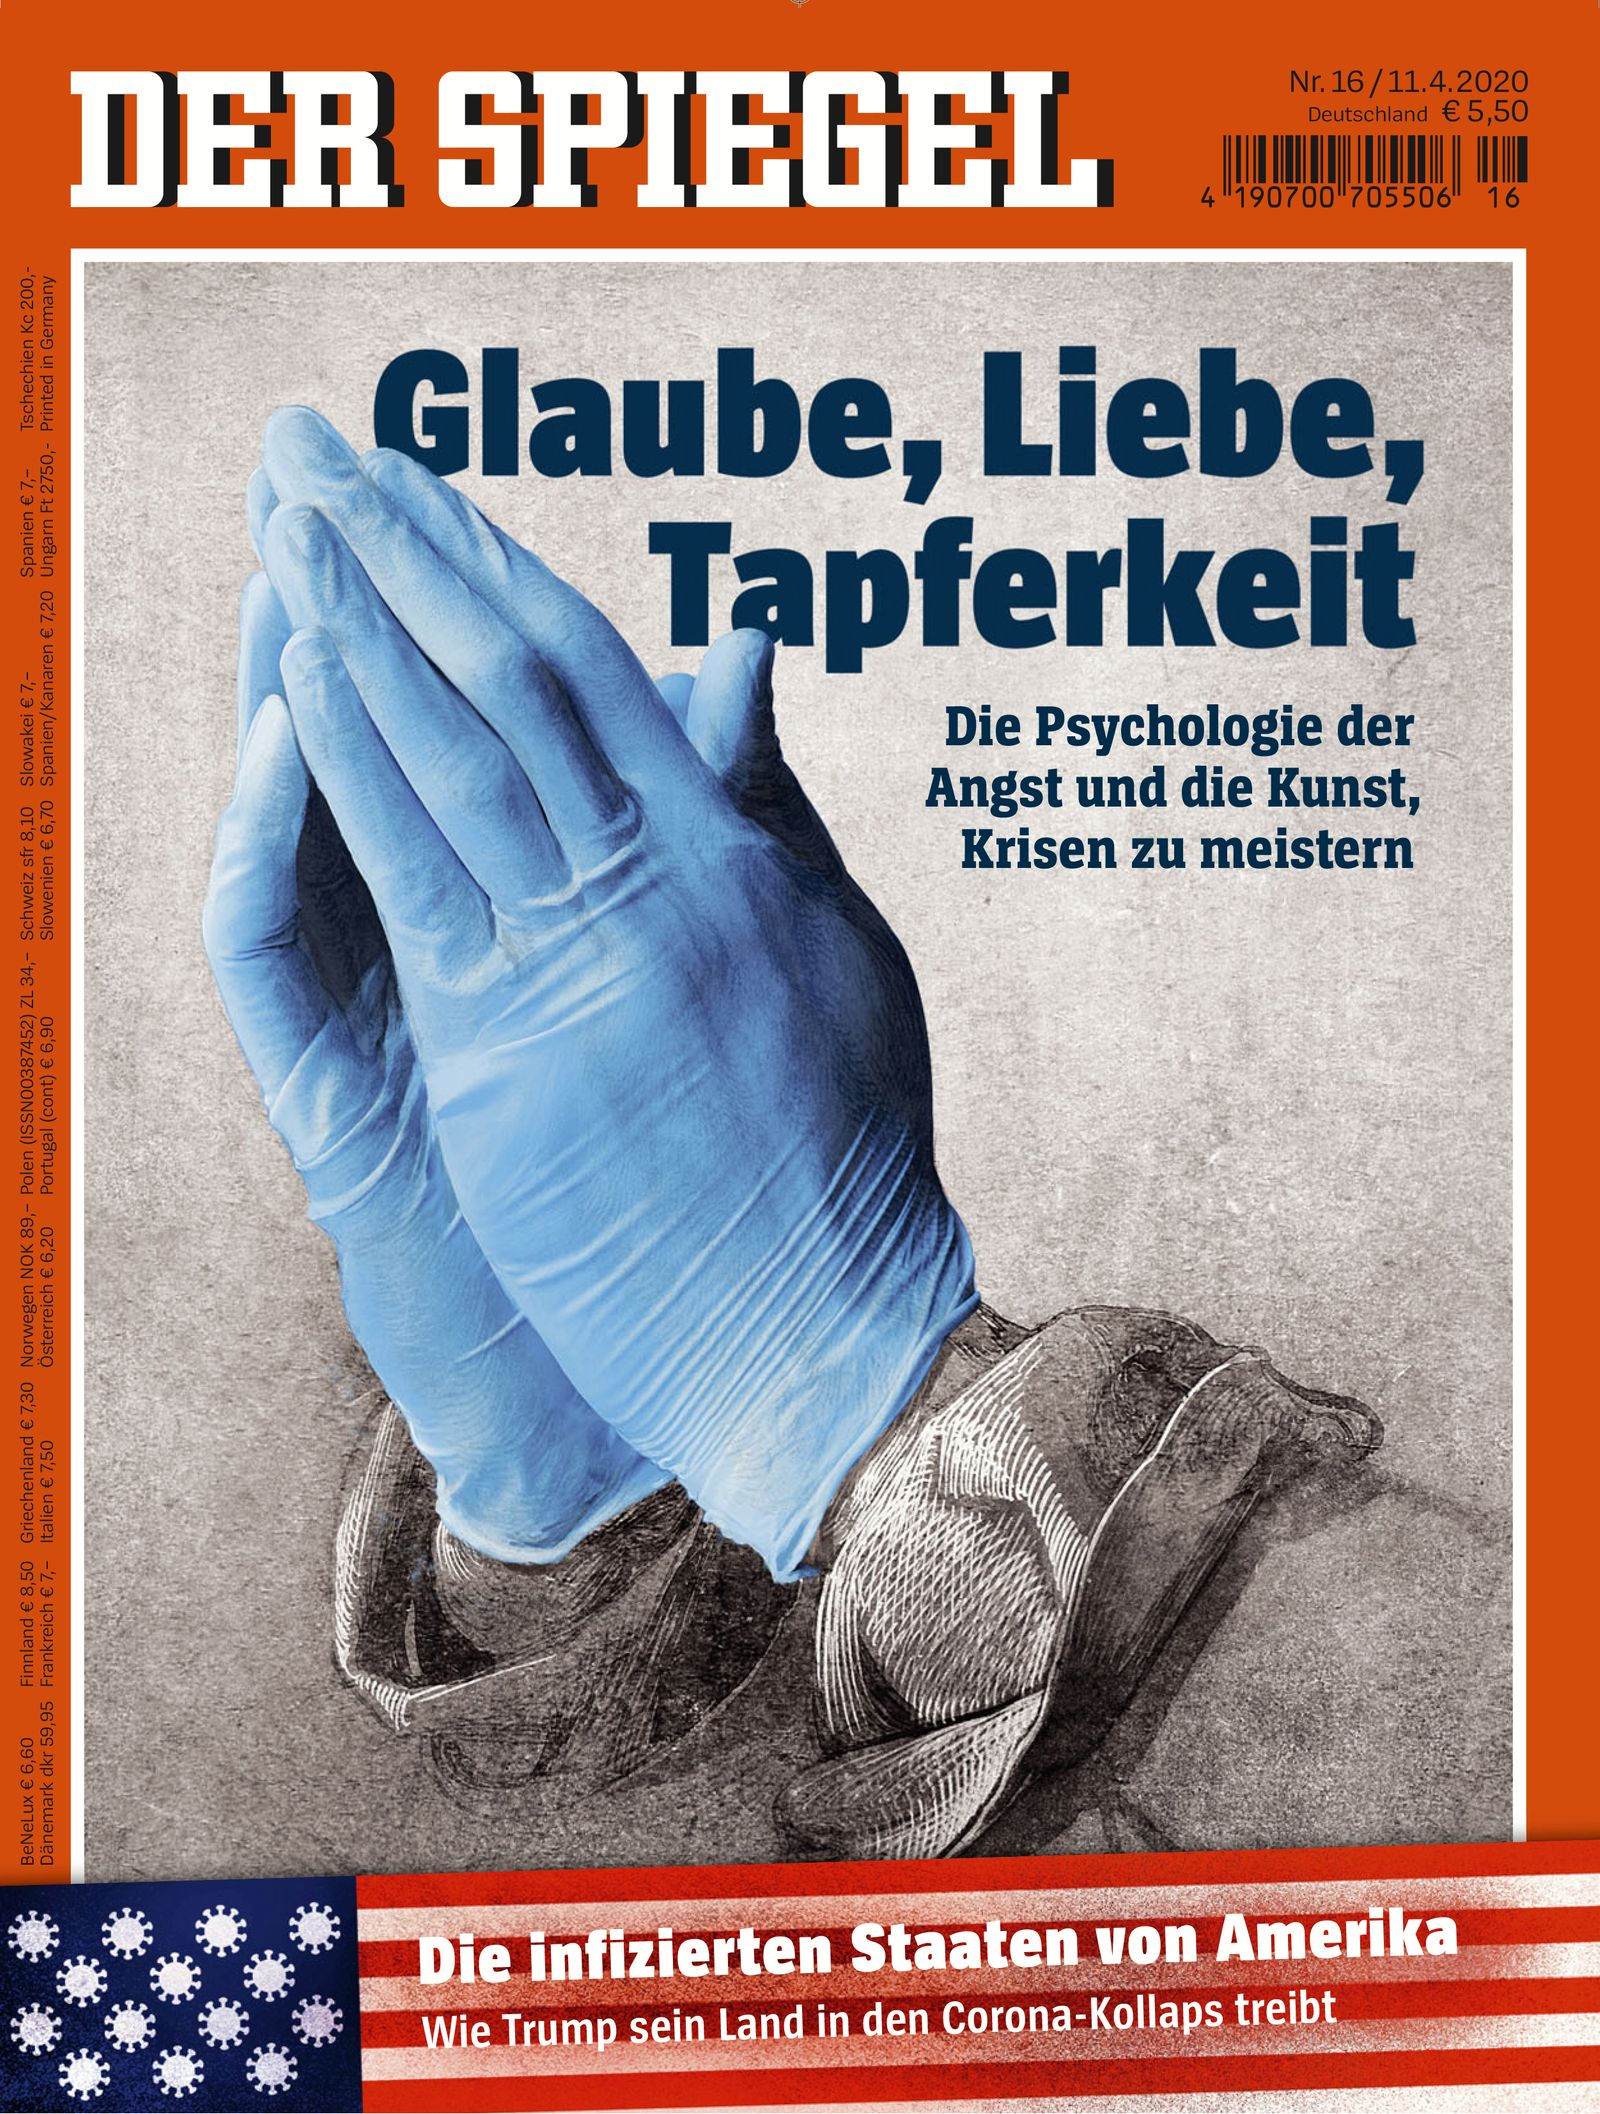 spiegel-cover-16